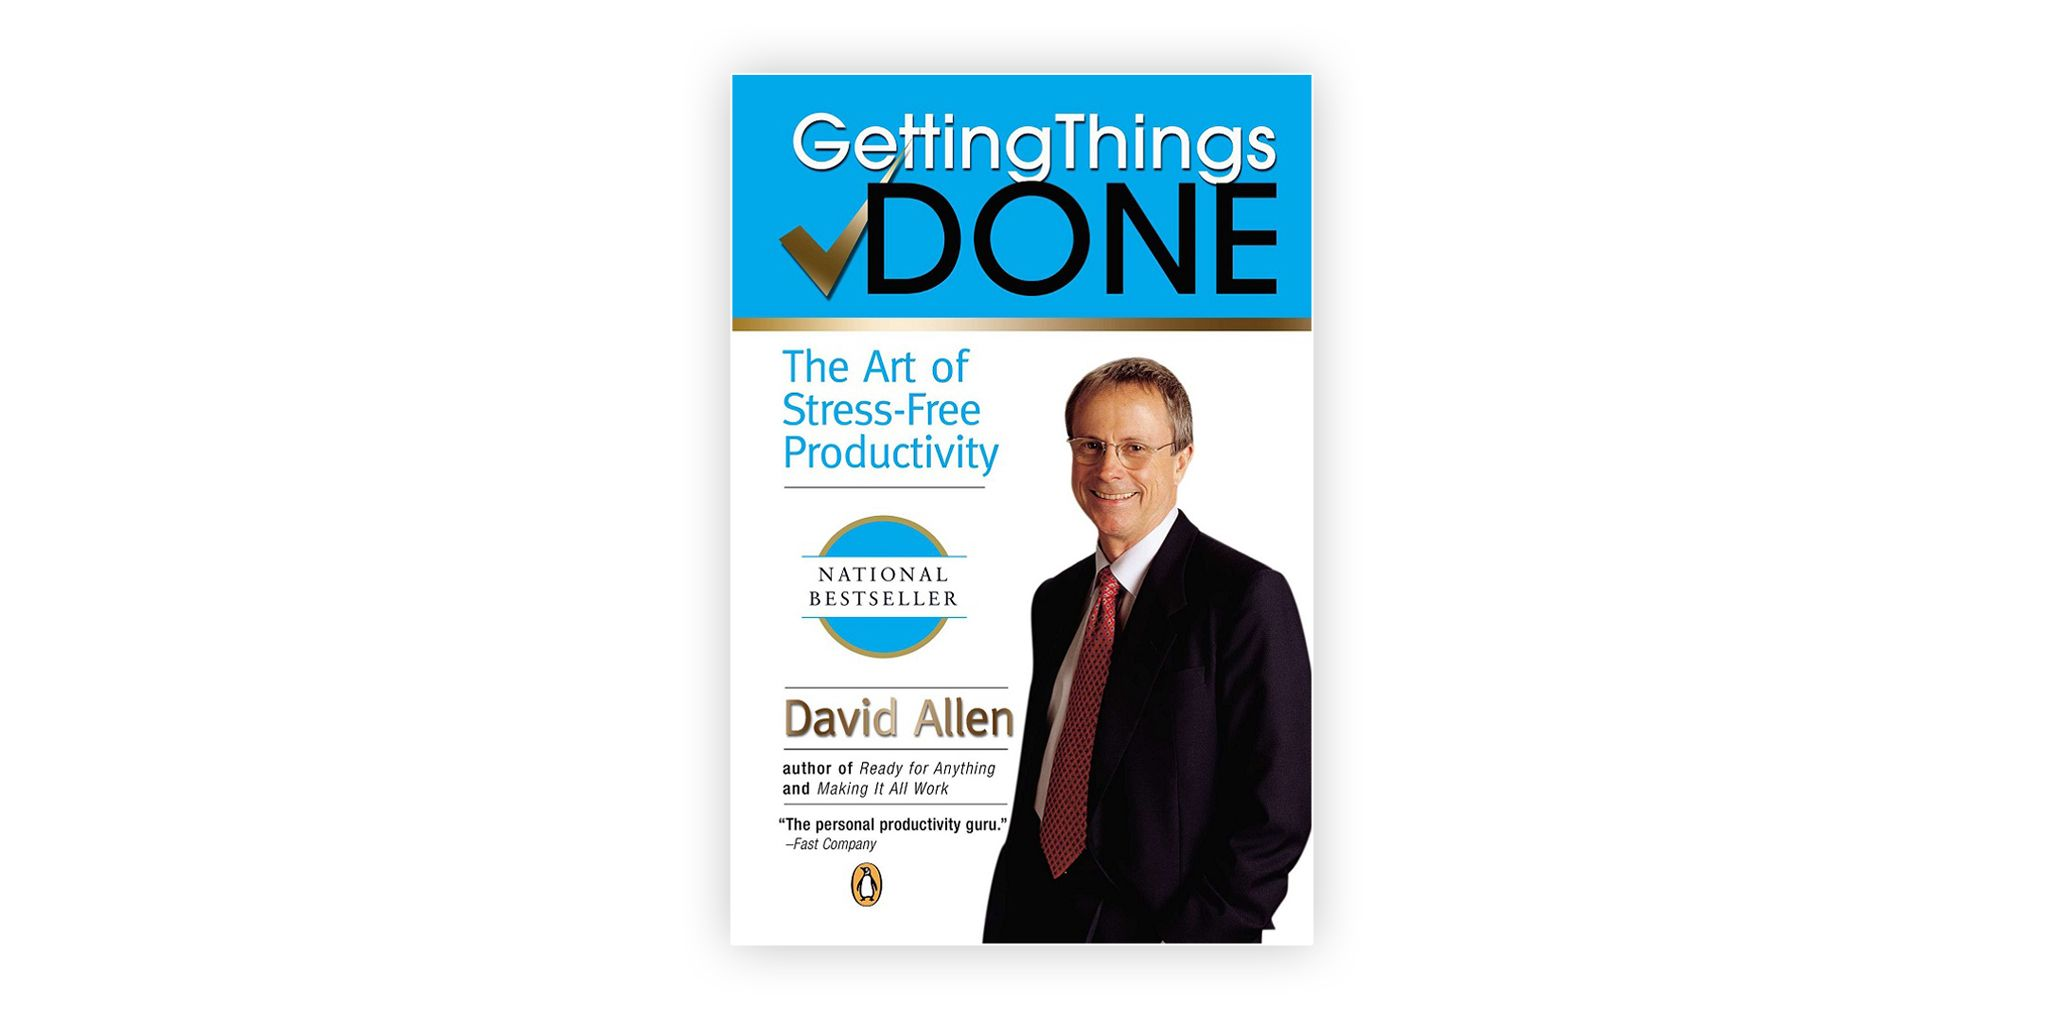 Get Things Done book